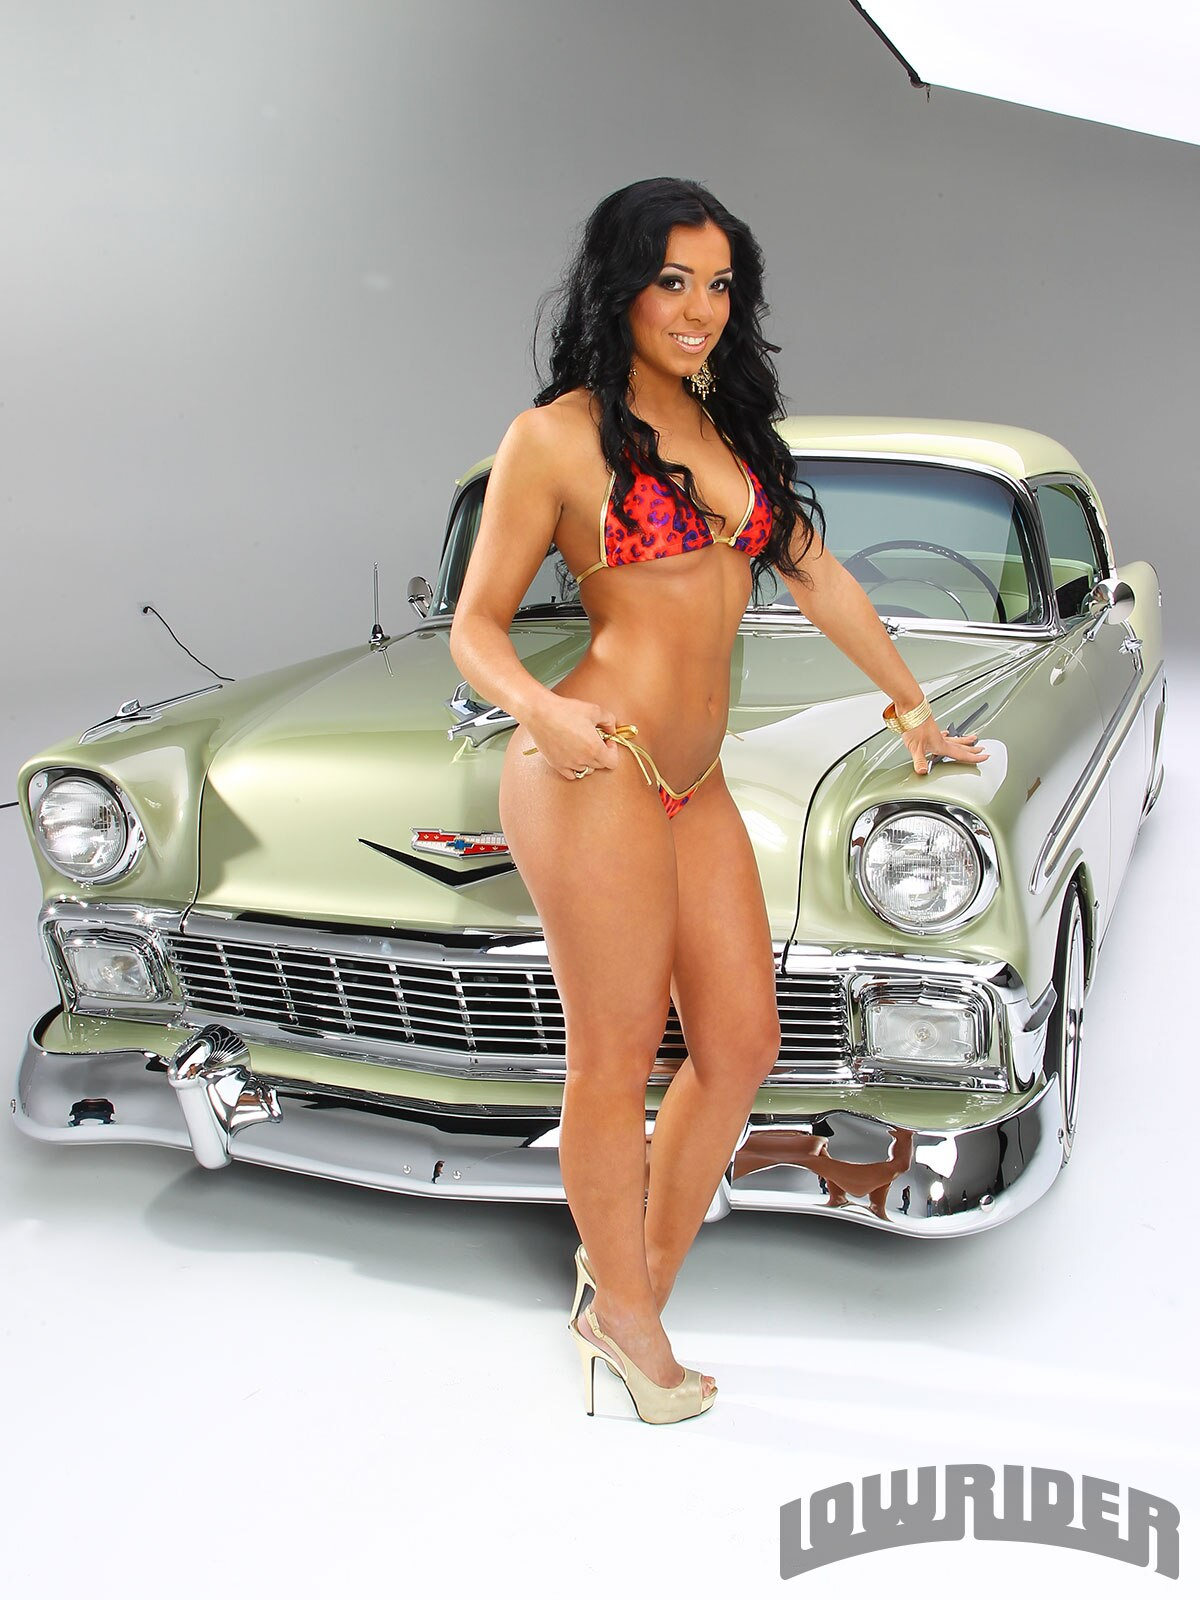 The lowrider girls models